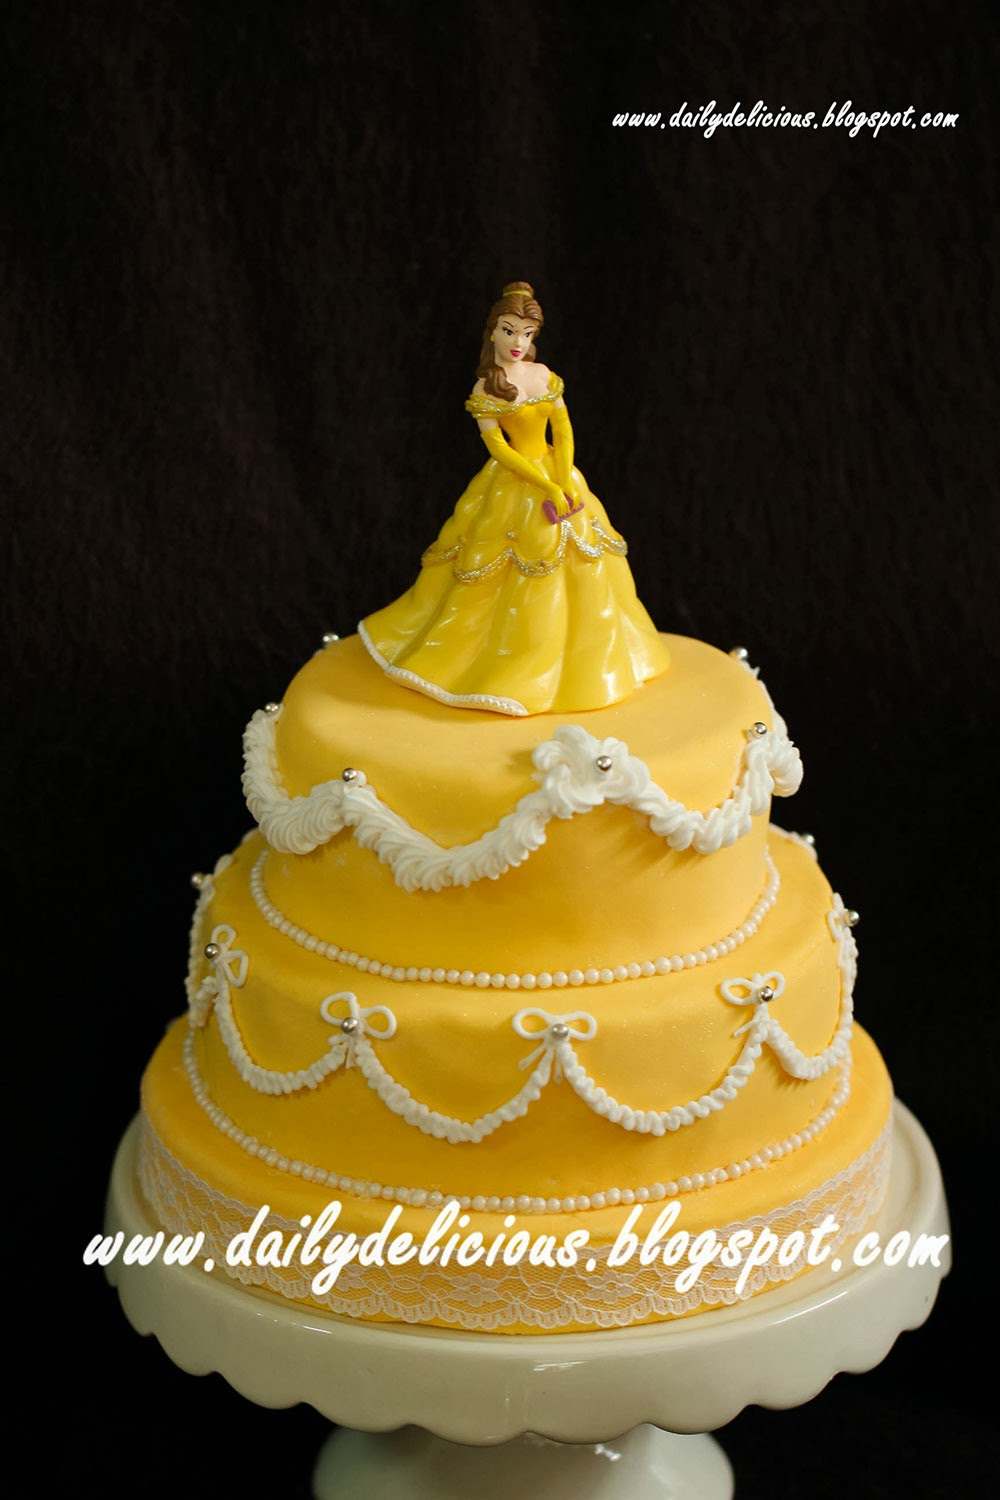 dailydelicious: Happy Birthday My Niece: Princess Cake ...